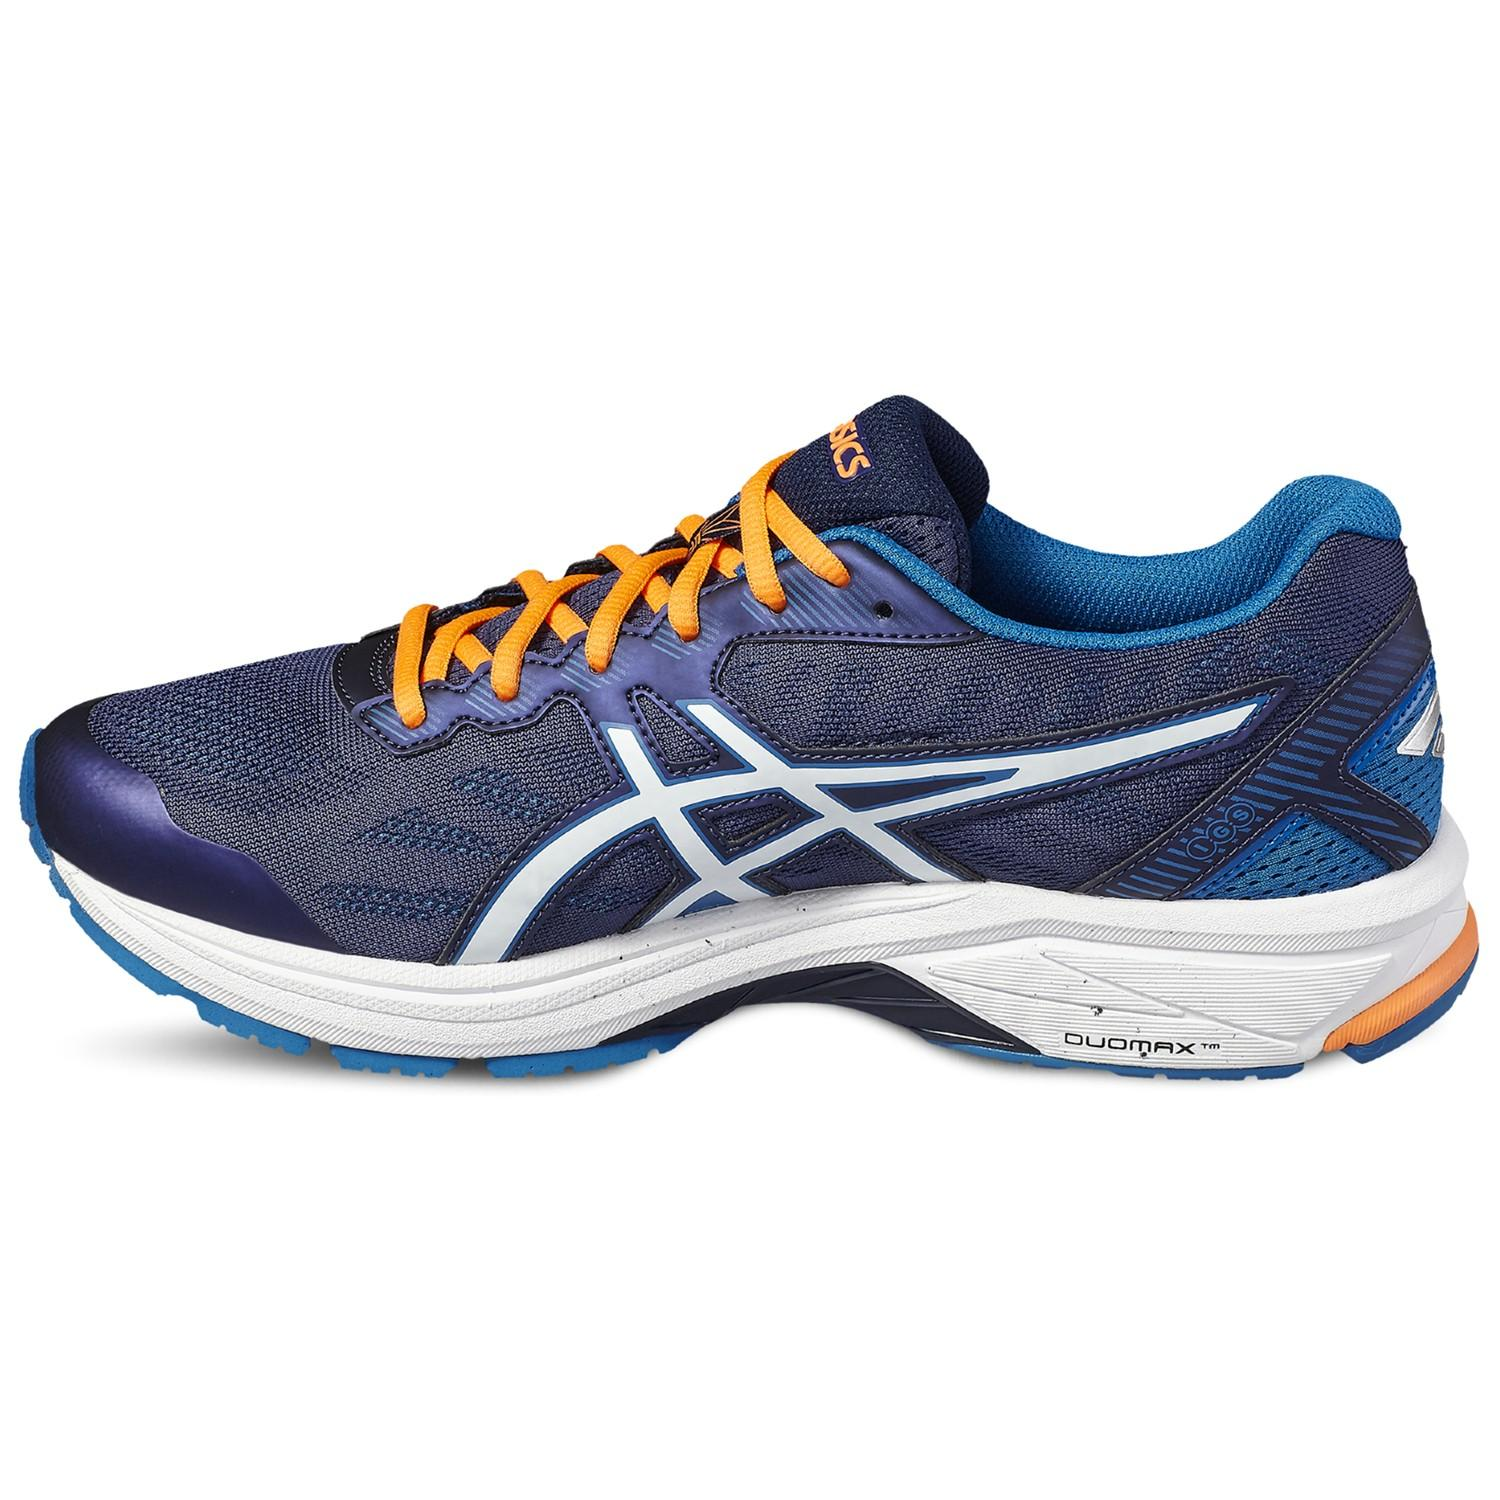 Finding The Right Asics Running Shoes